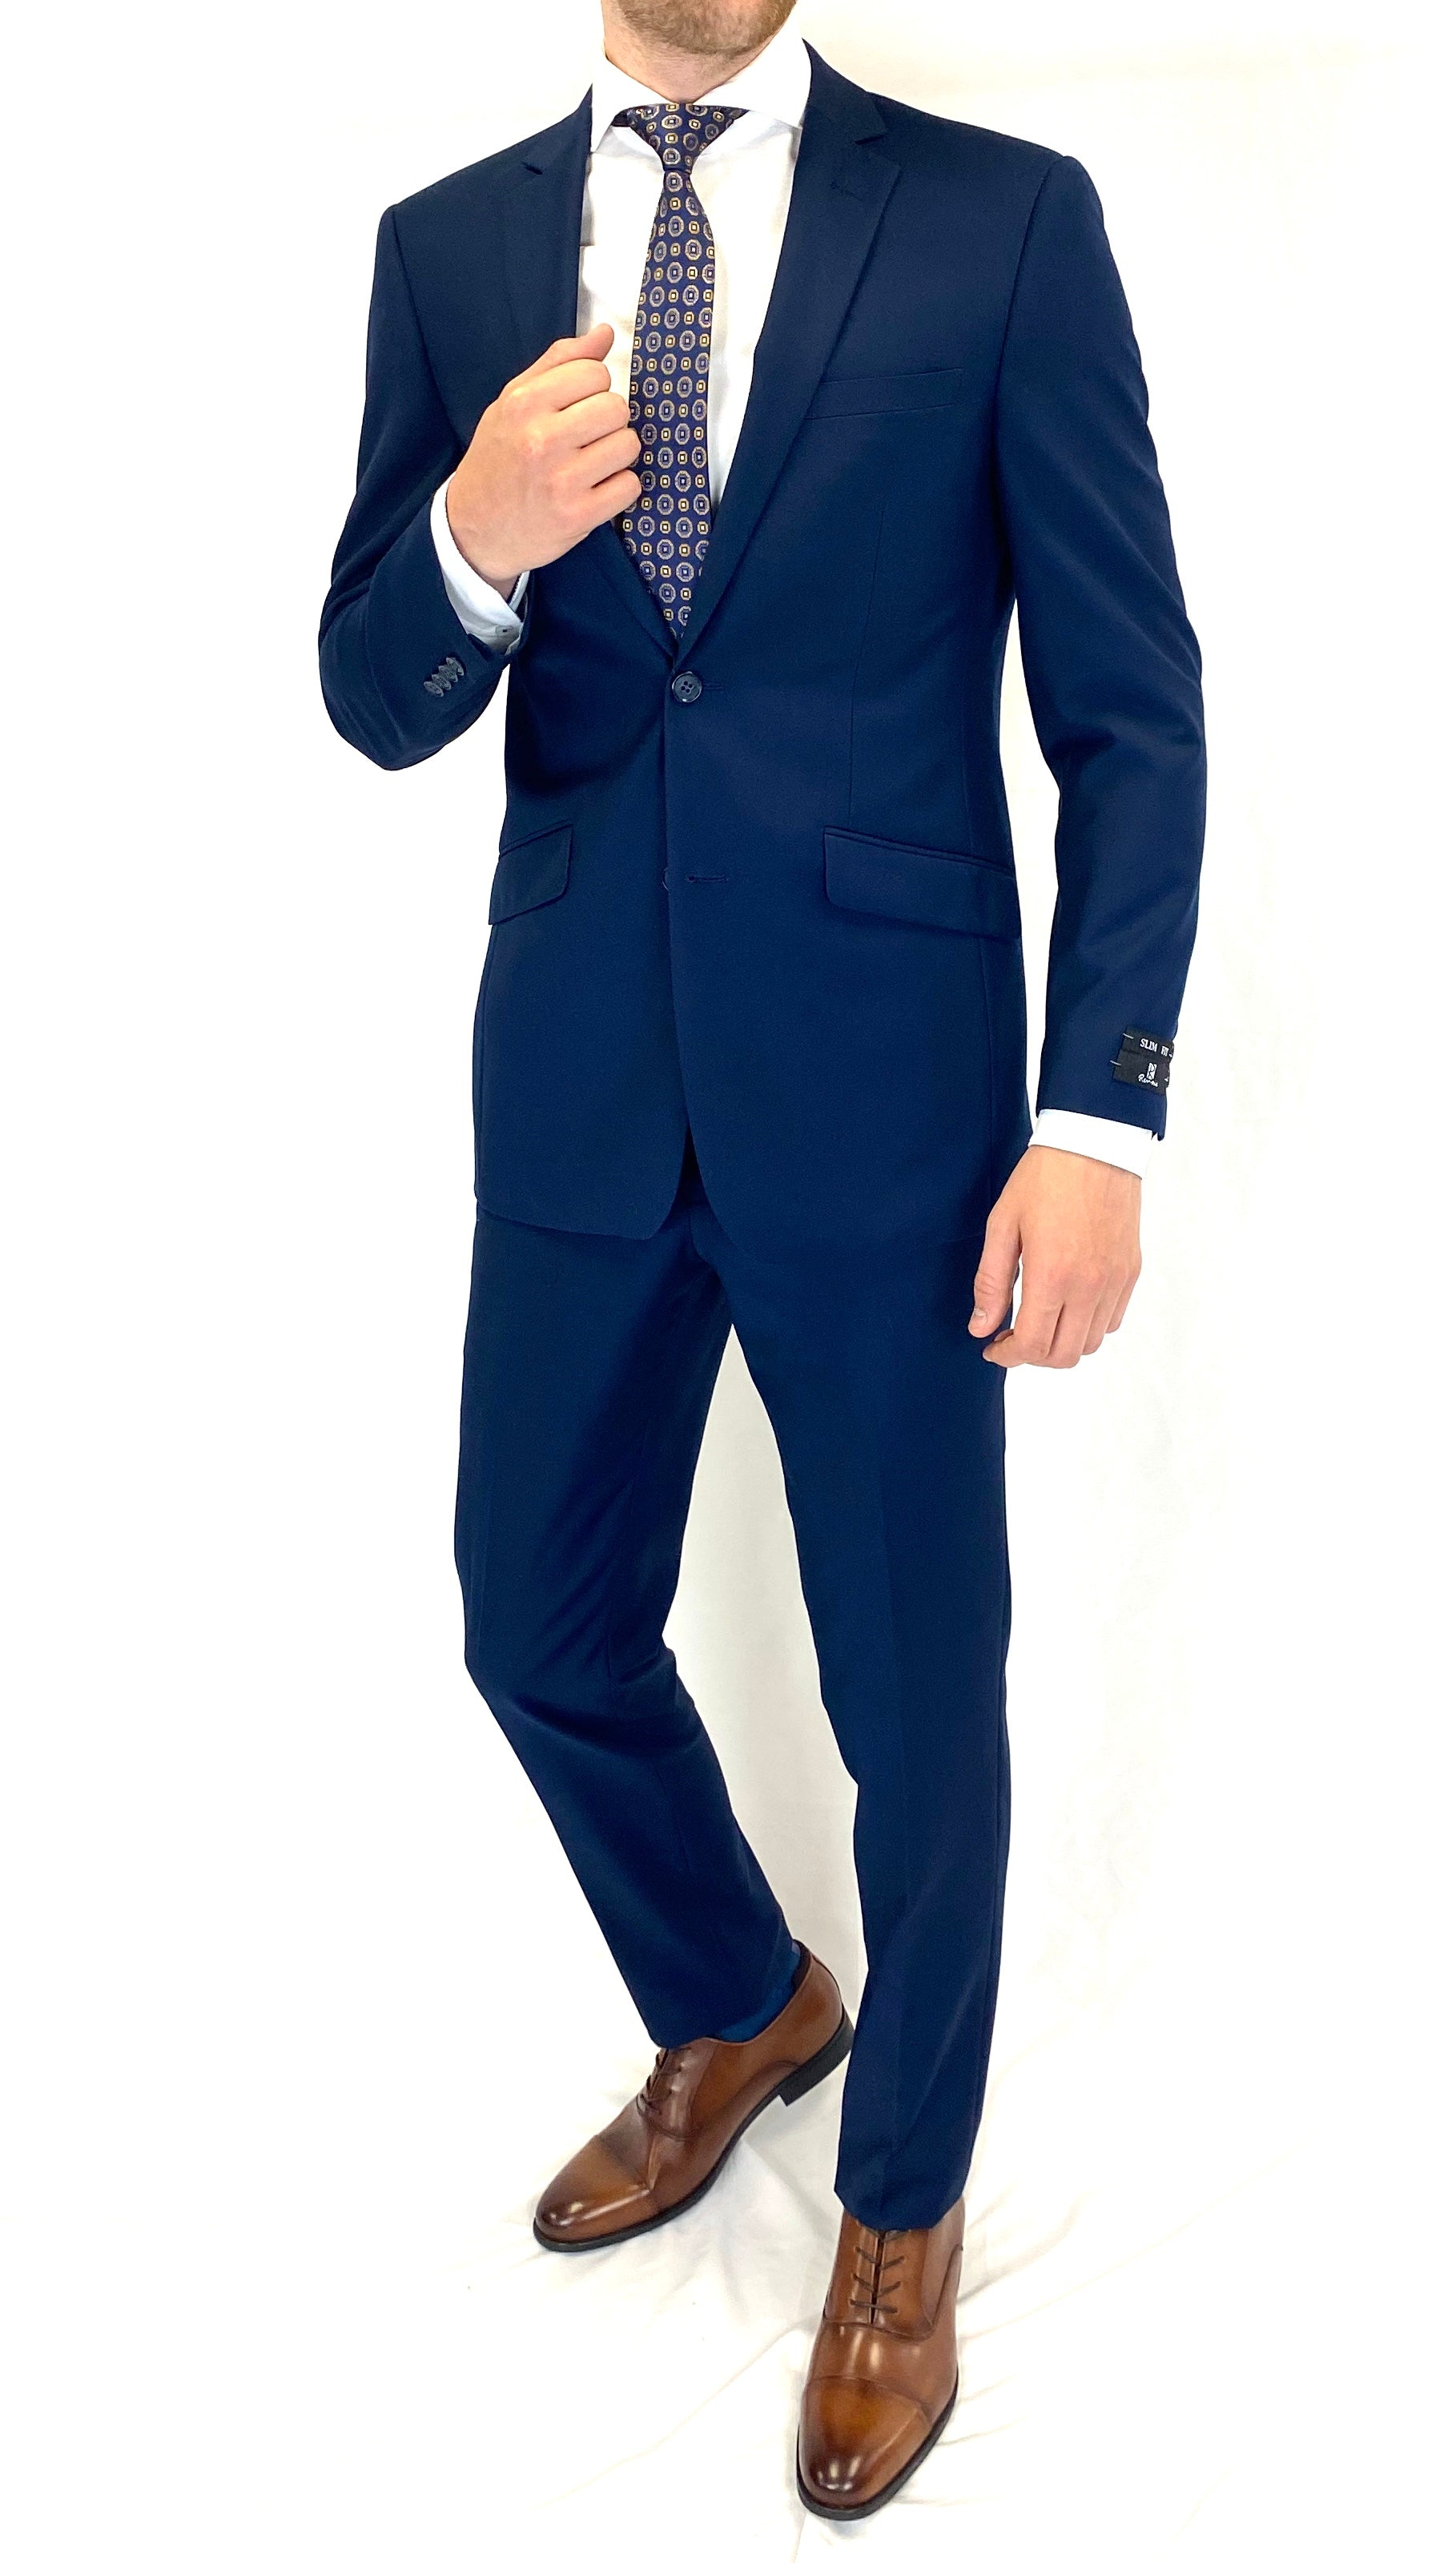 Renoir Slim Fit Suit in Navy